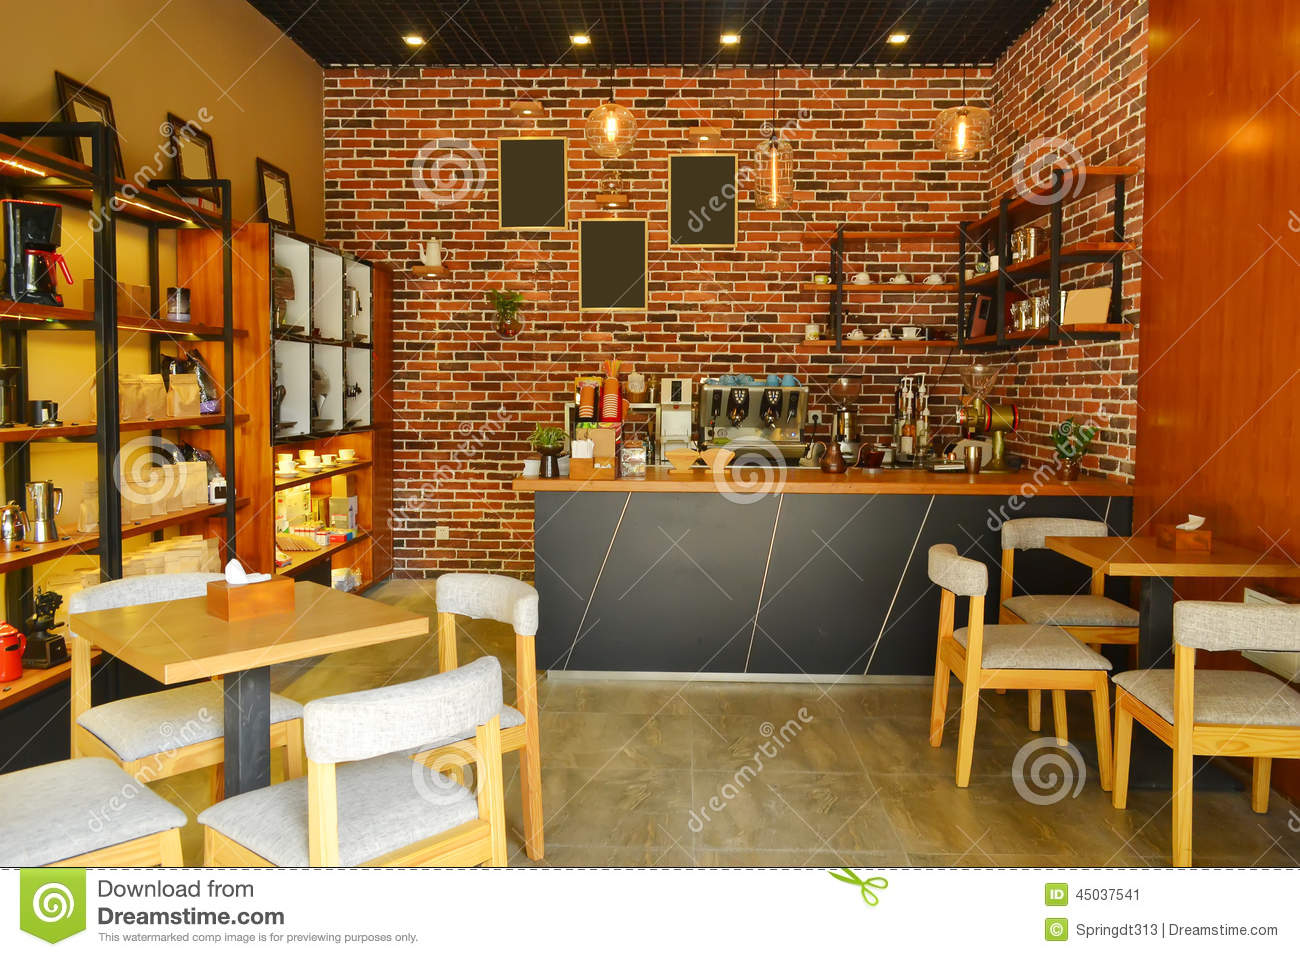 Cafe interior stock image image of entertainment wine for Deco de interiores